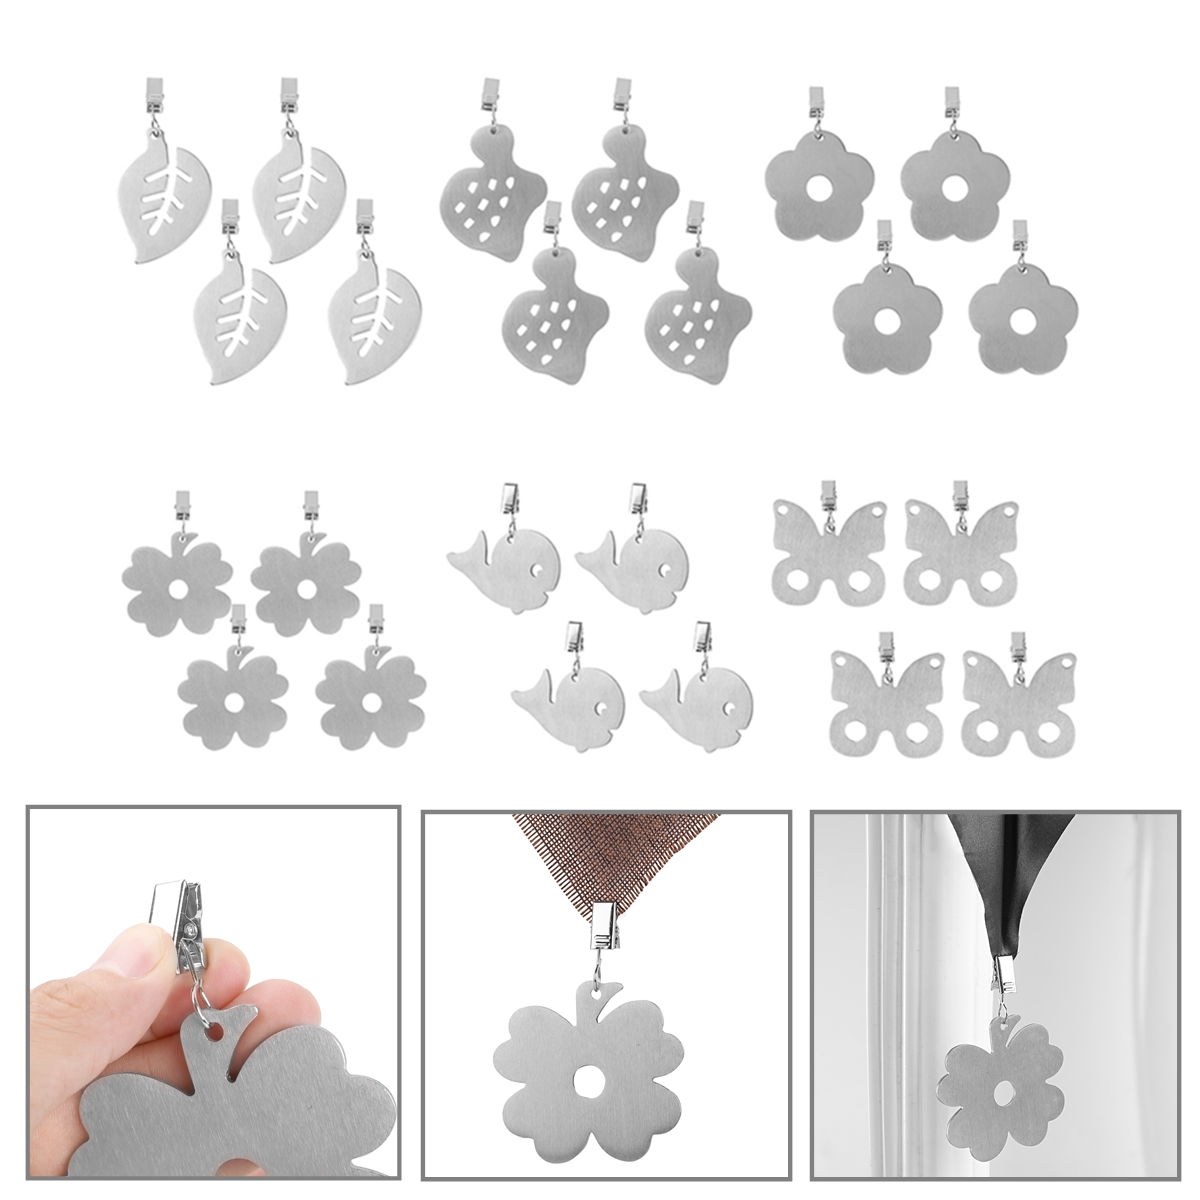 4pcs Heavy Duty Stainless Steel Pendant Tablecloth Weights with Metal Clips Clamps for Outdoor Garden Party Picnic Table Covers